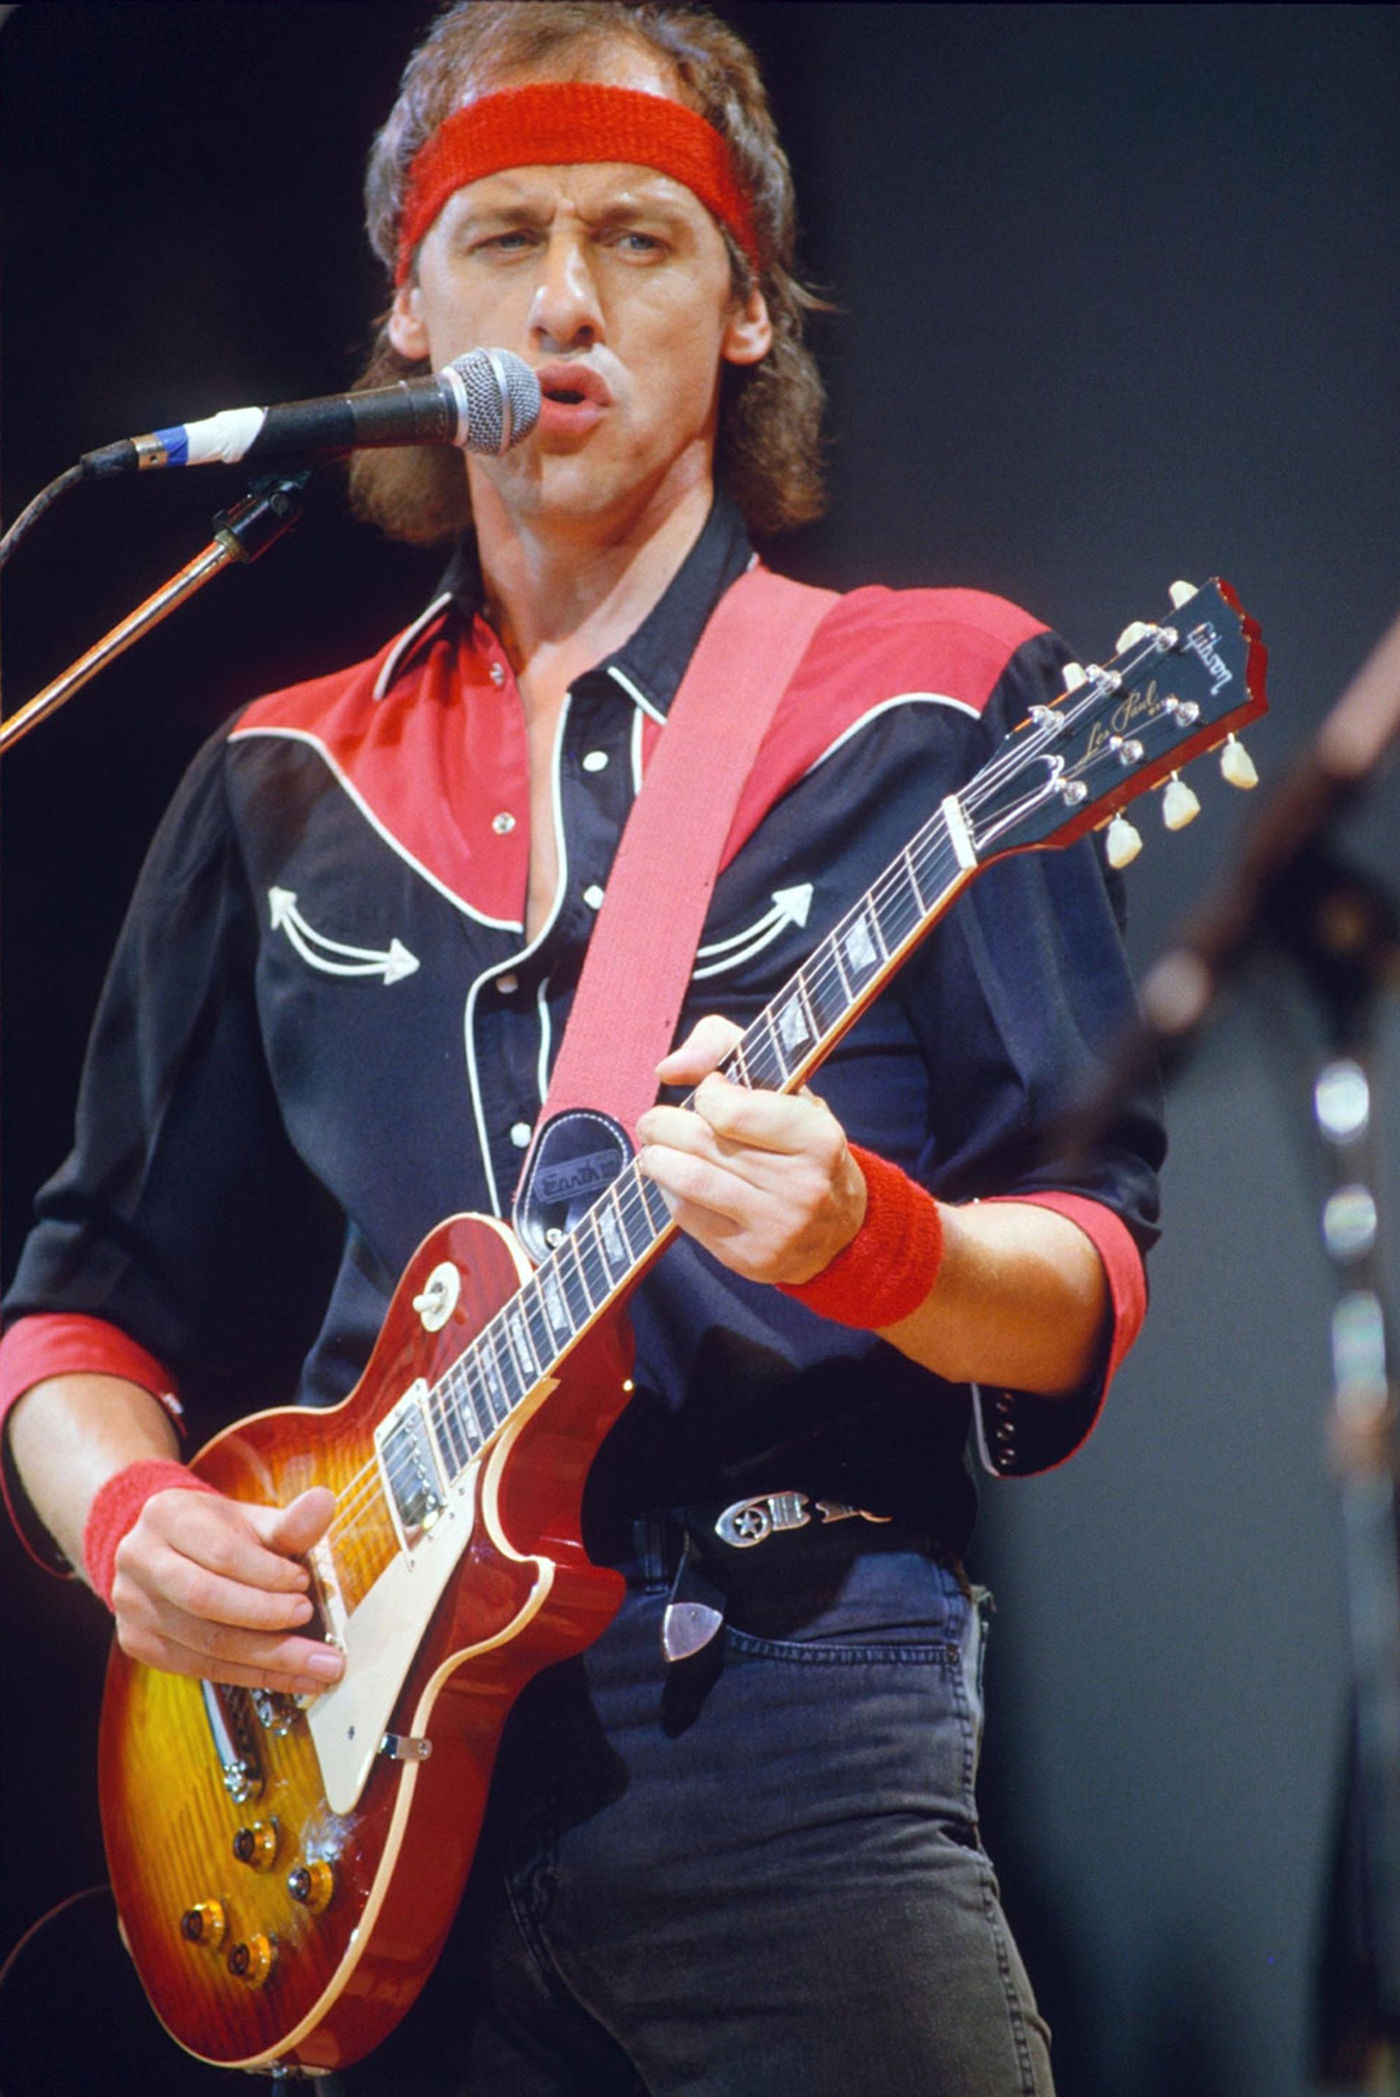 Eventim Mark Knopfler